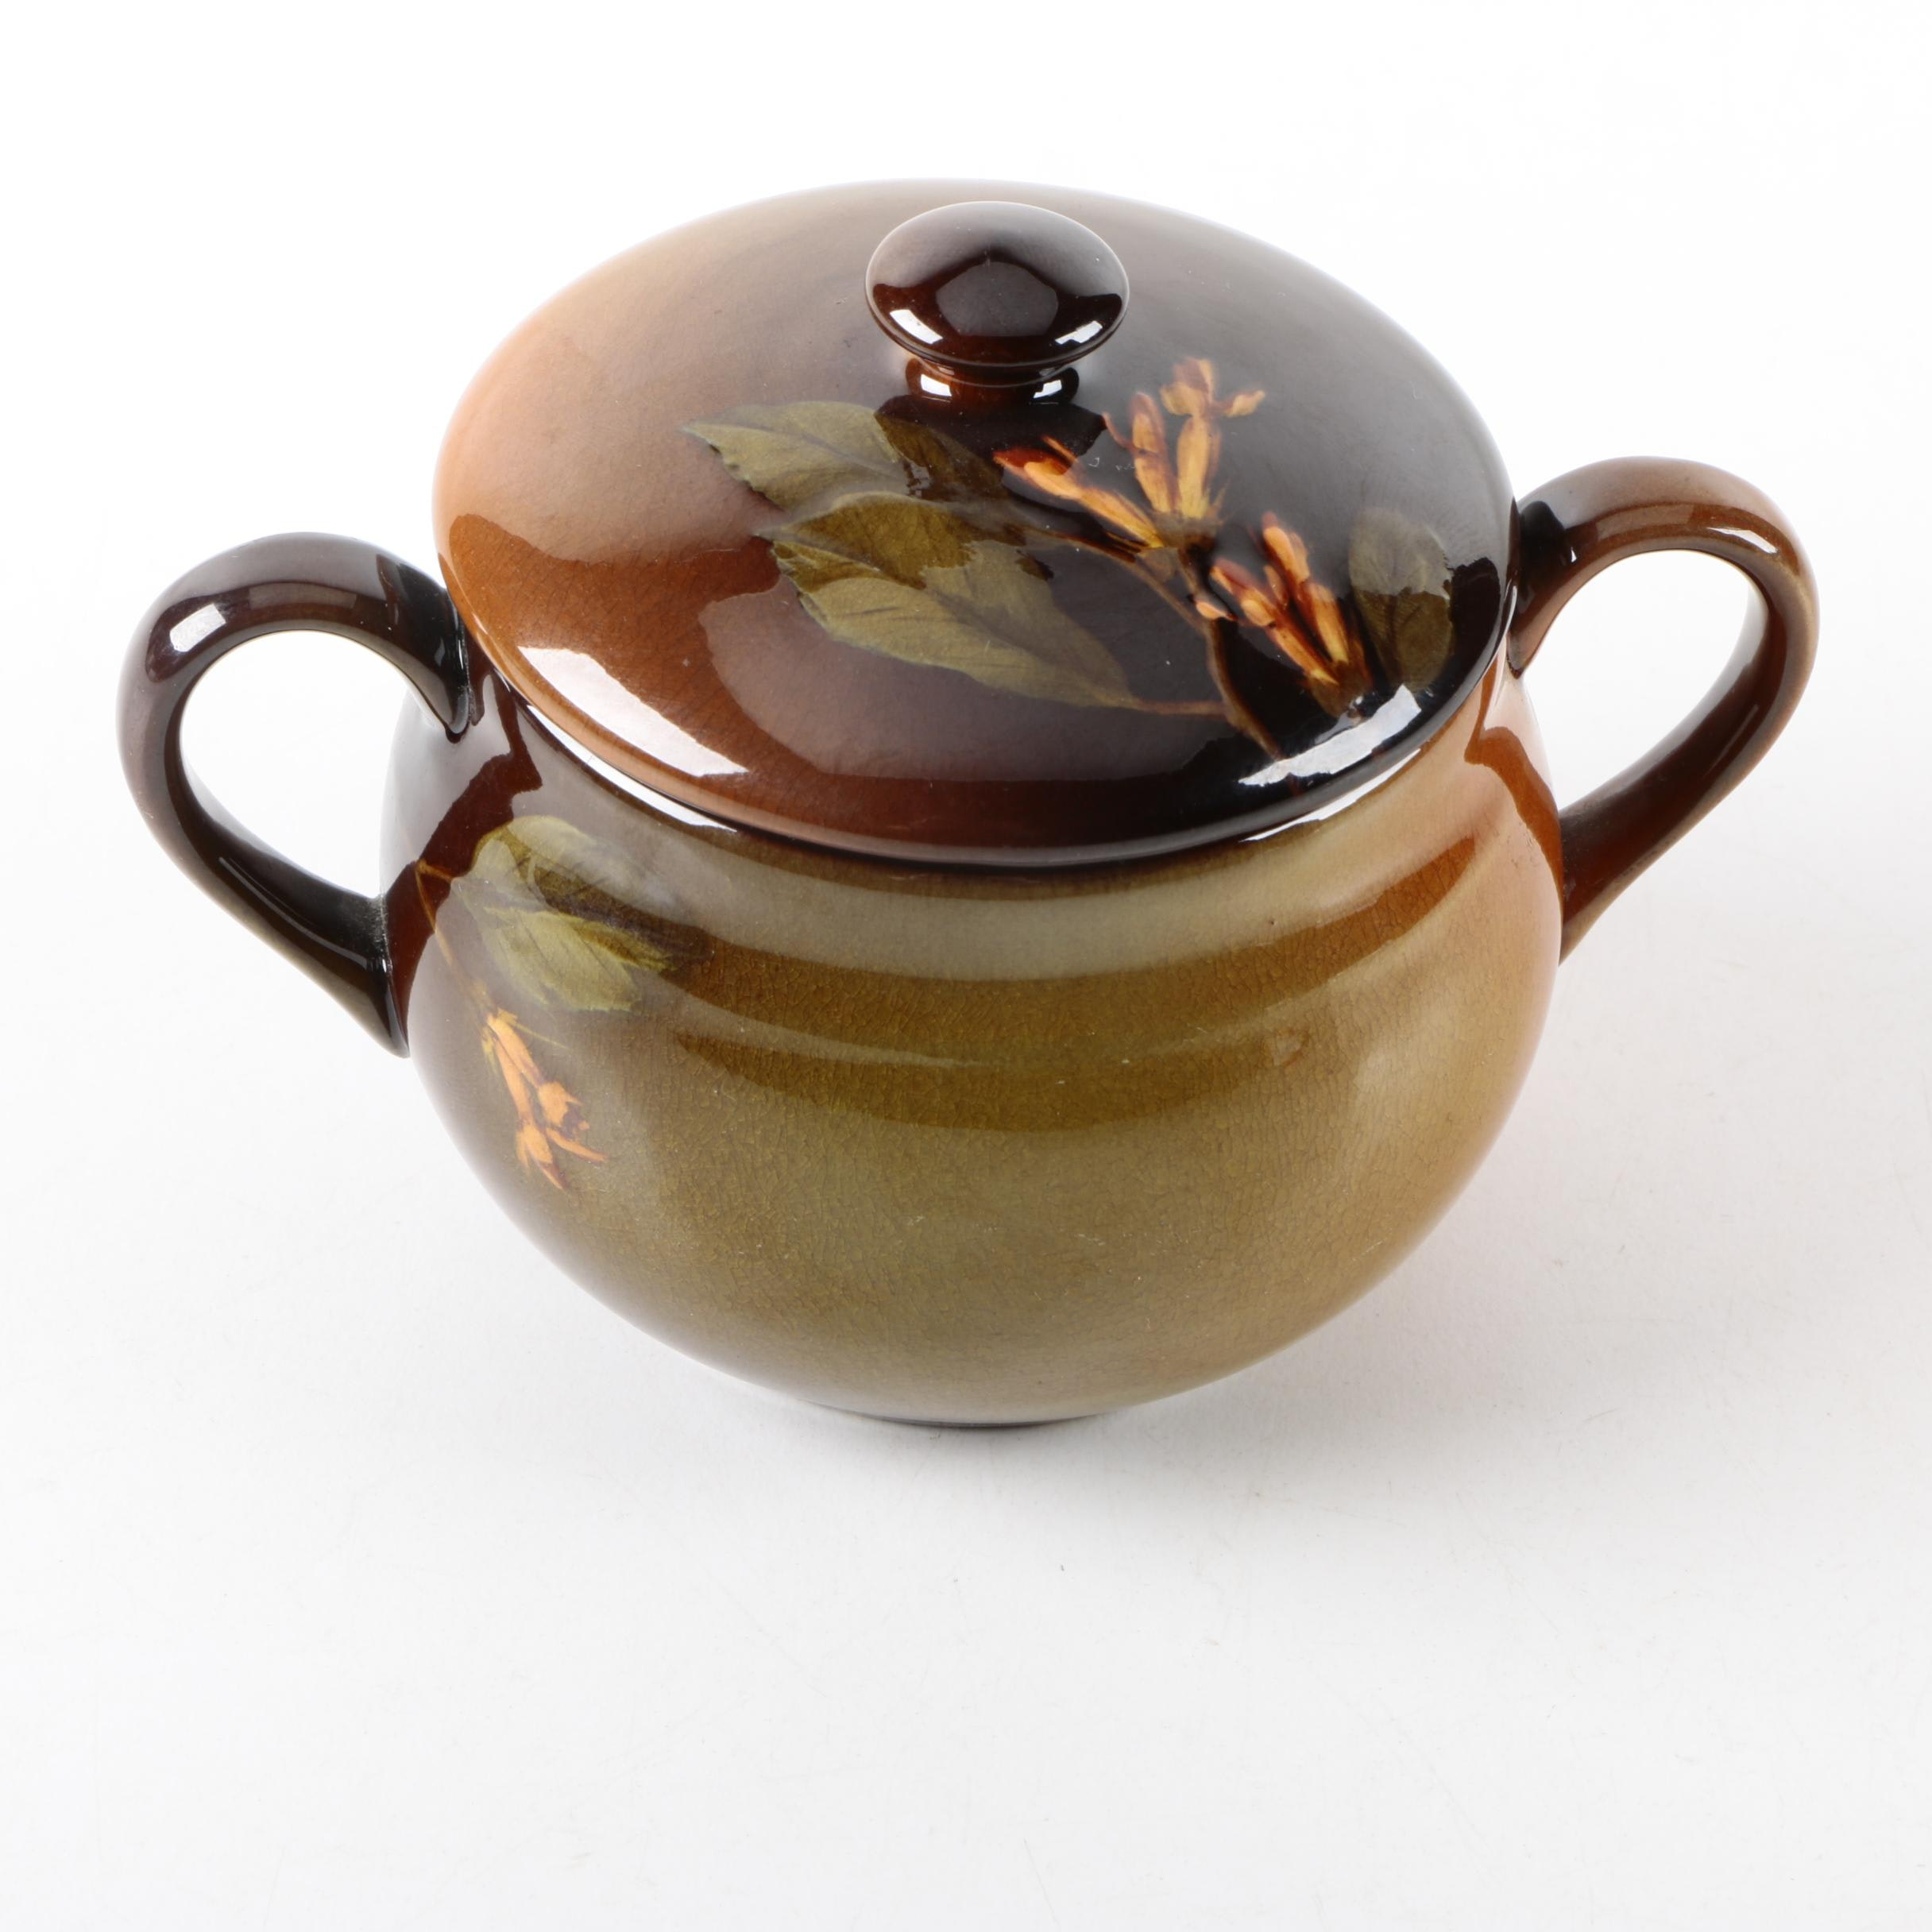 1899 Rookwood Pottery Signed Sugar Bowl with Lid by Felton